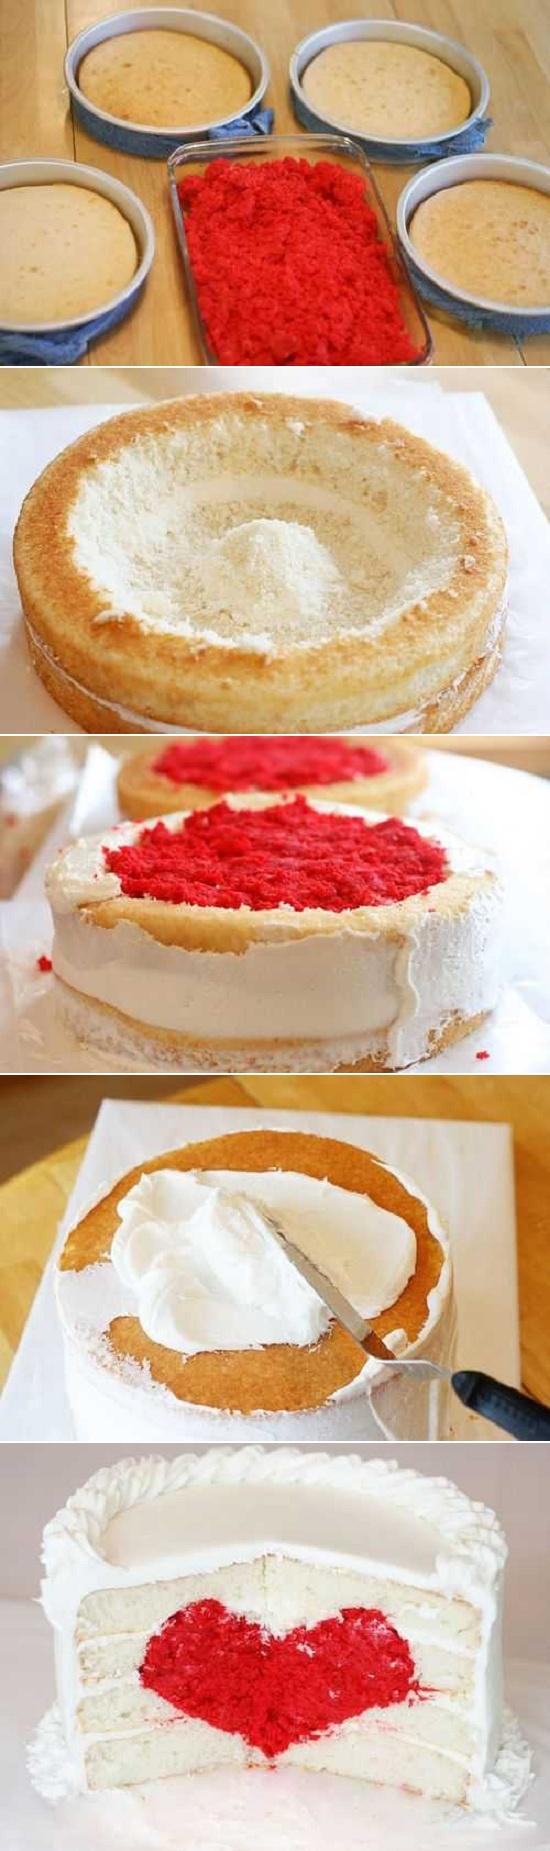 I don't like cake, but this is too adorable not to pin.  Red velvet suprise love heart suprise cupcake